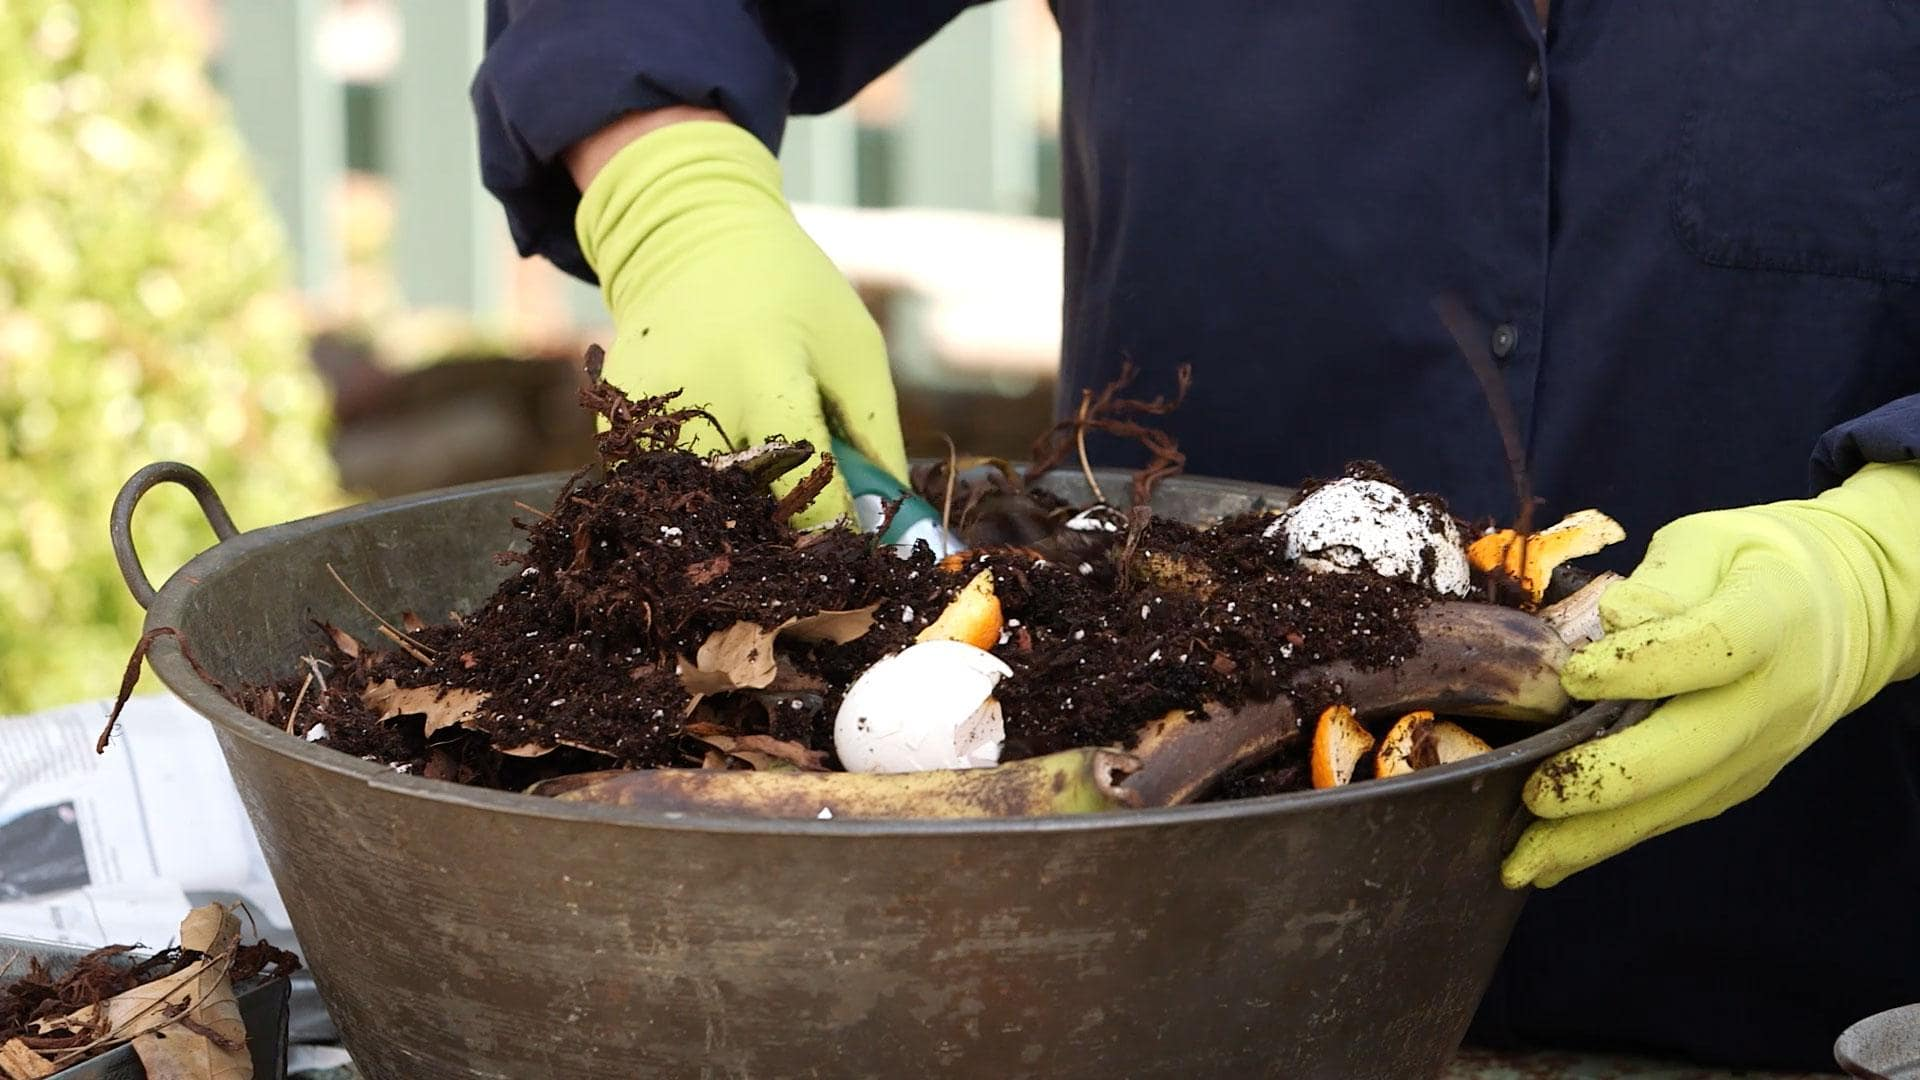 Places To Carry Garden Plants And Leaves For Compost